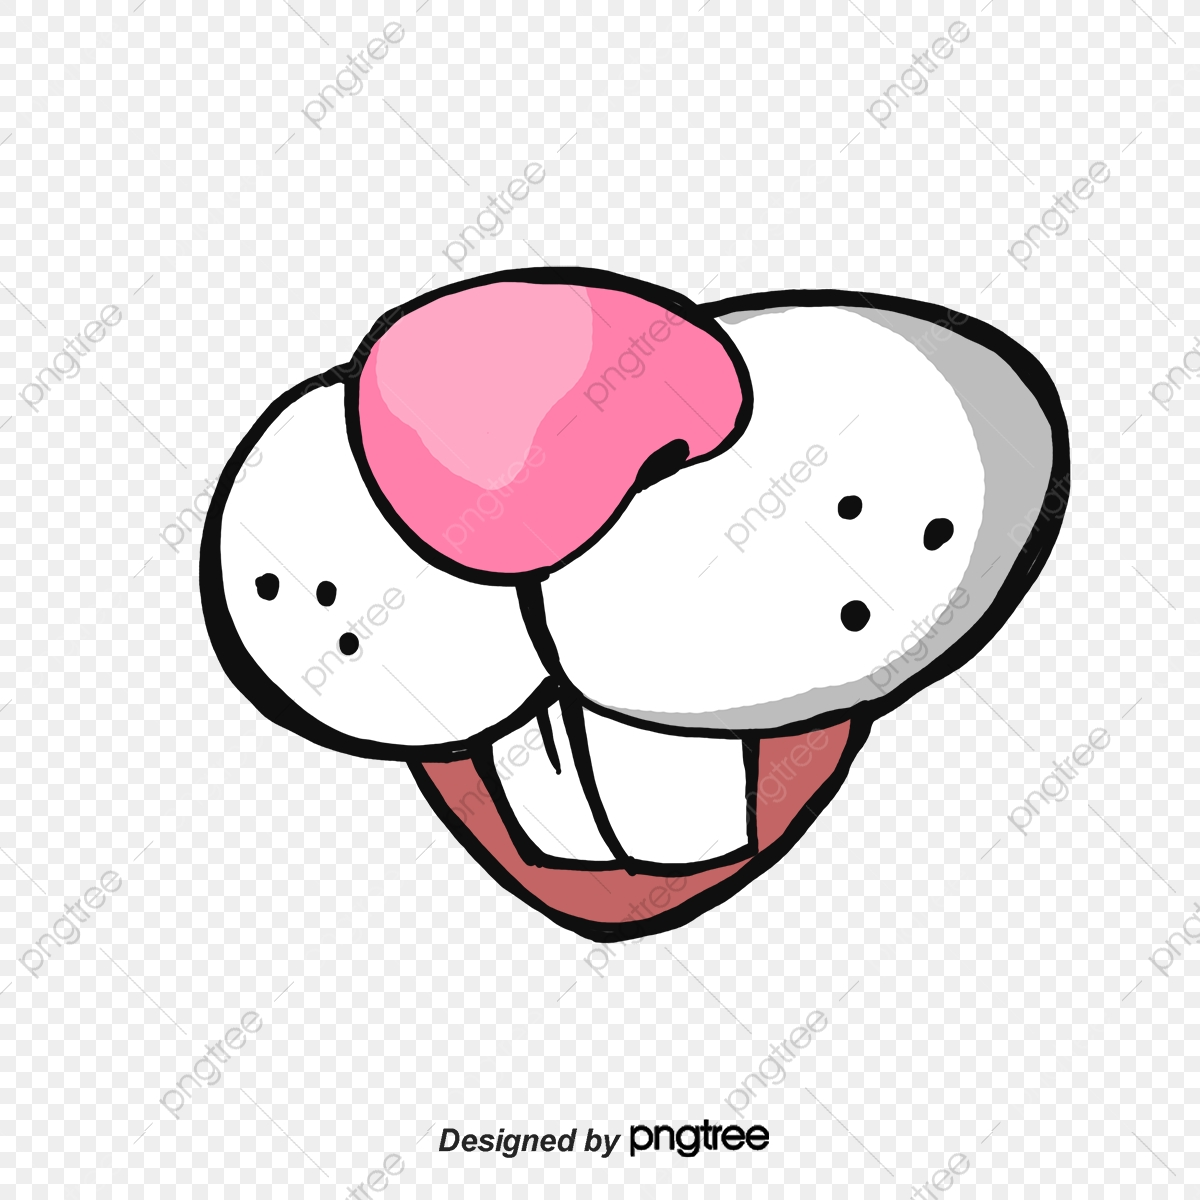 Pink Nose And White Big Rabbit Rabbit Teeth Nose Rabbit White Png Transparent Clipart Image And Psd File For Free Download